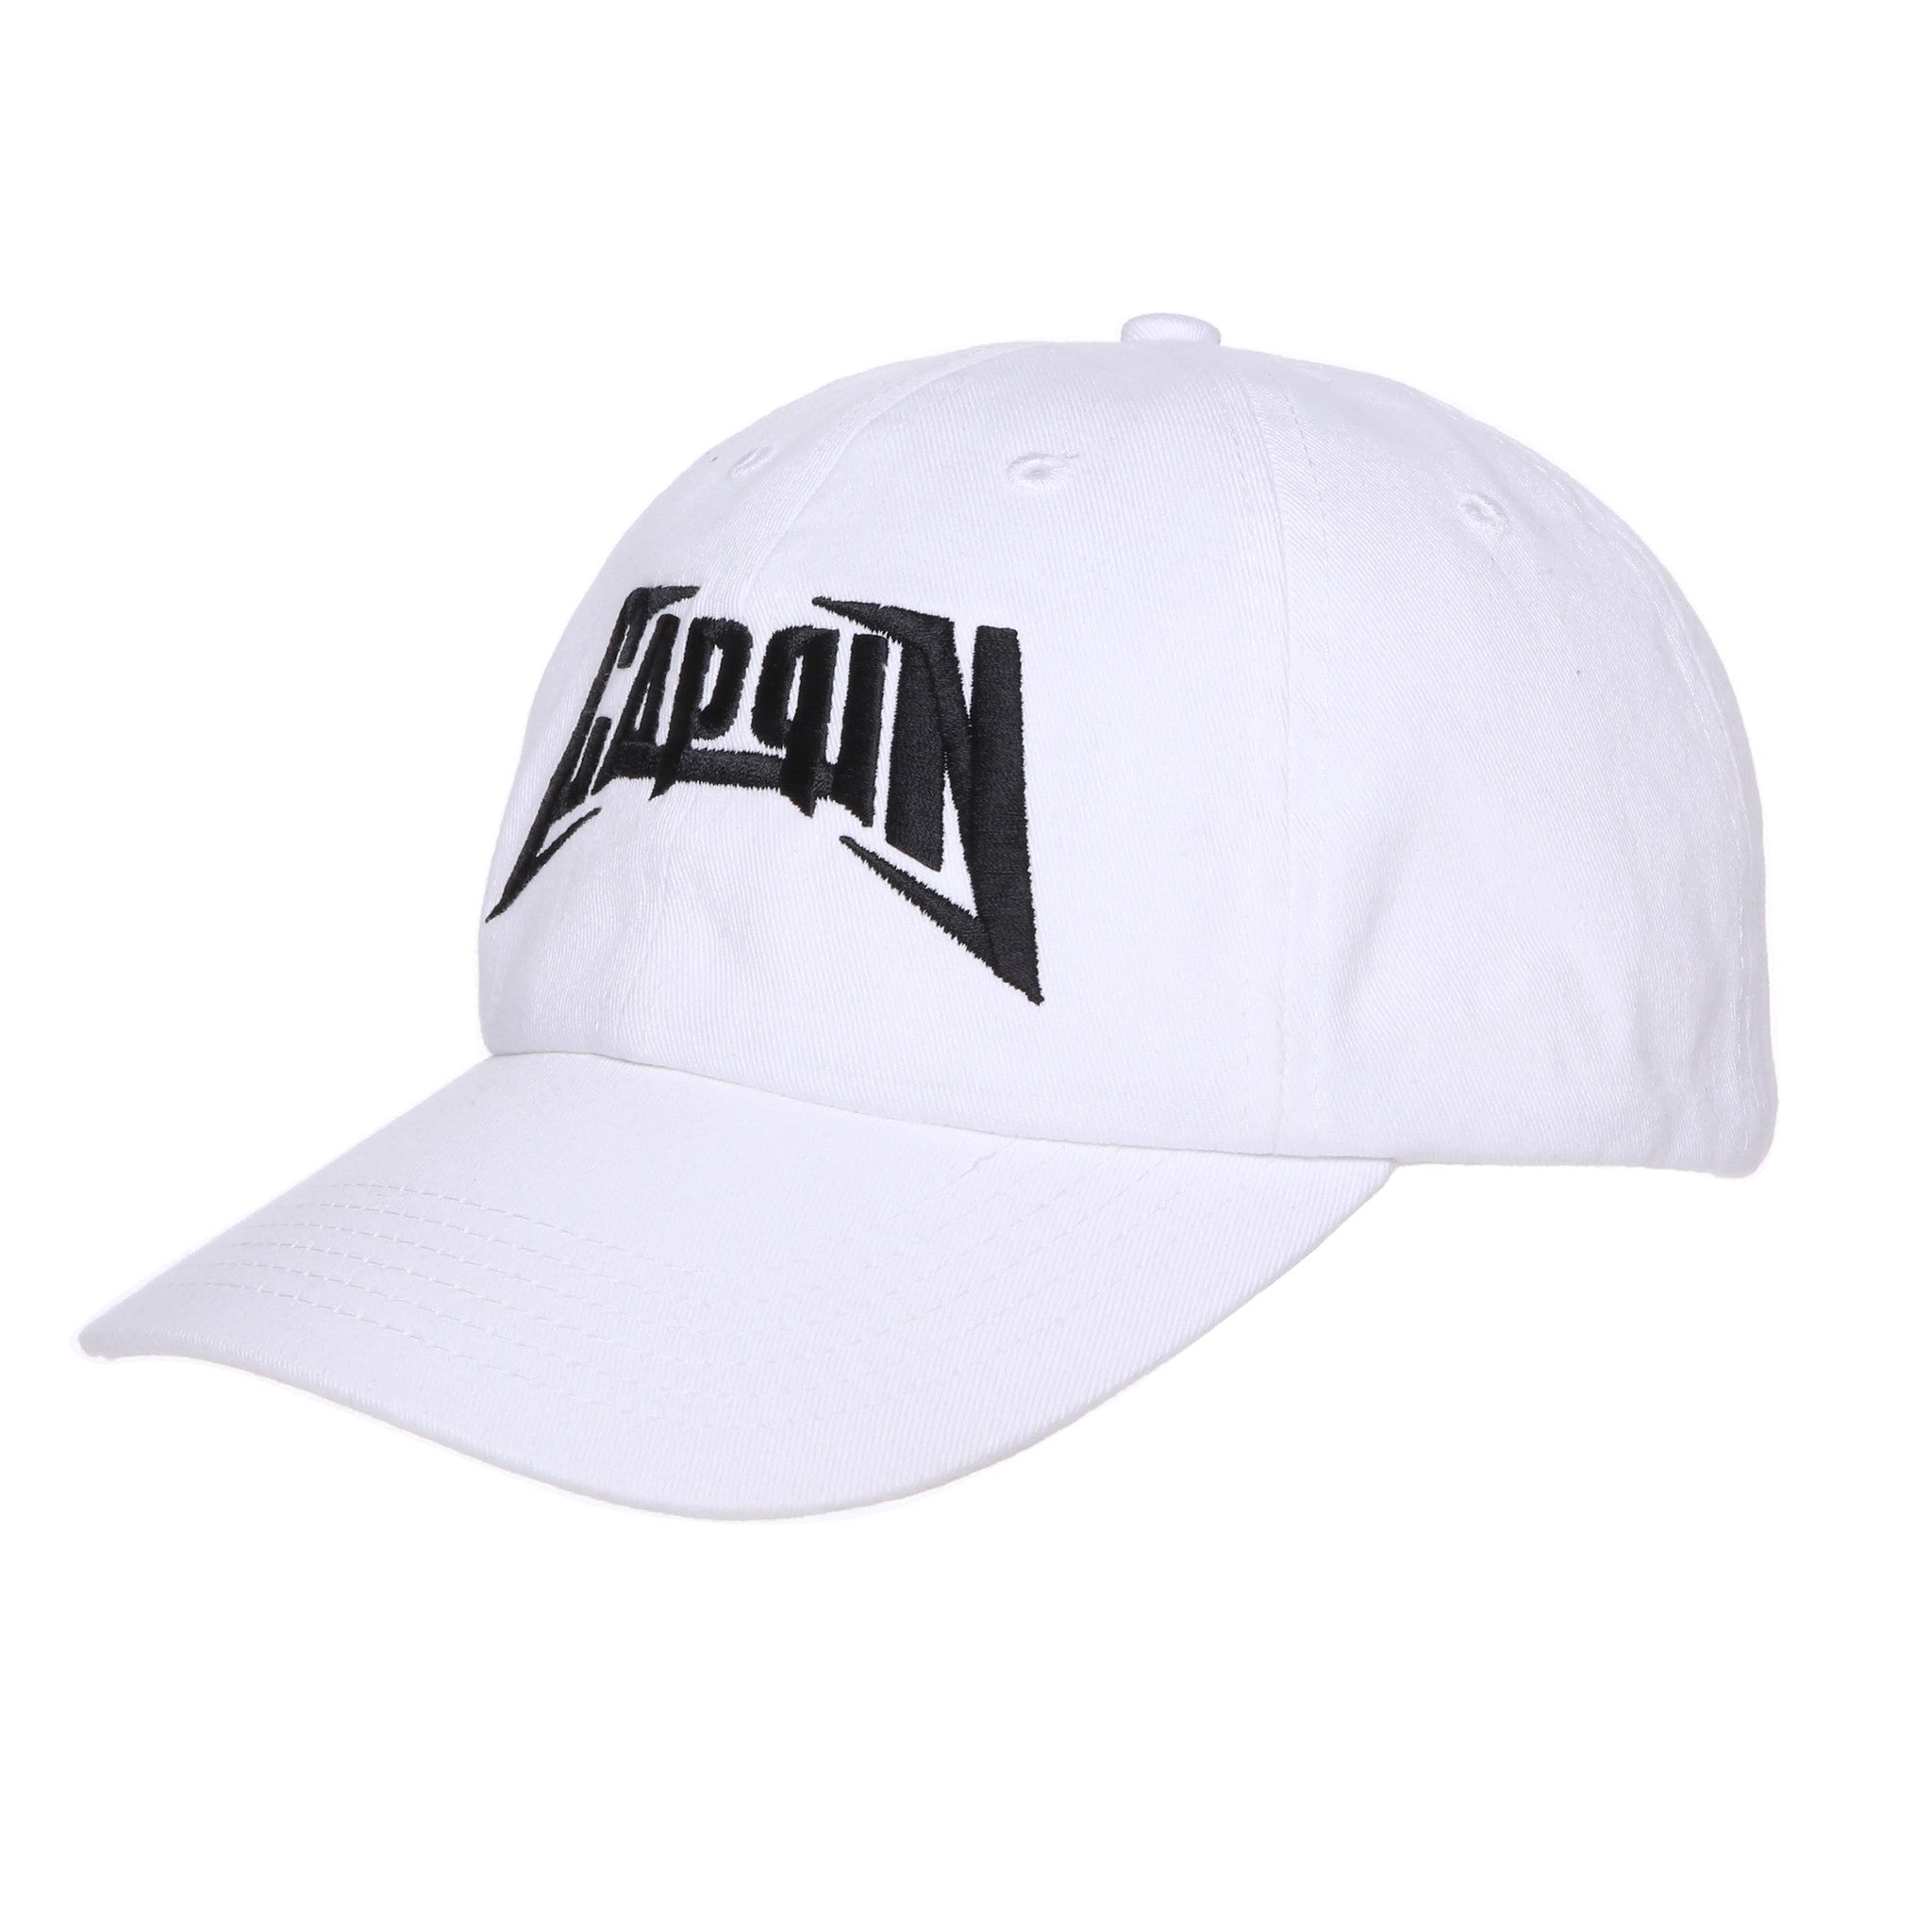 Cappin cap white glo gang worldwide for Cama quinsay